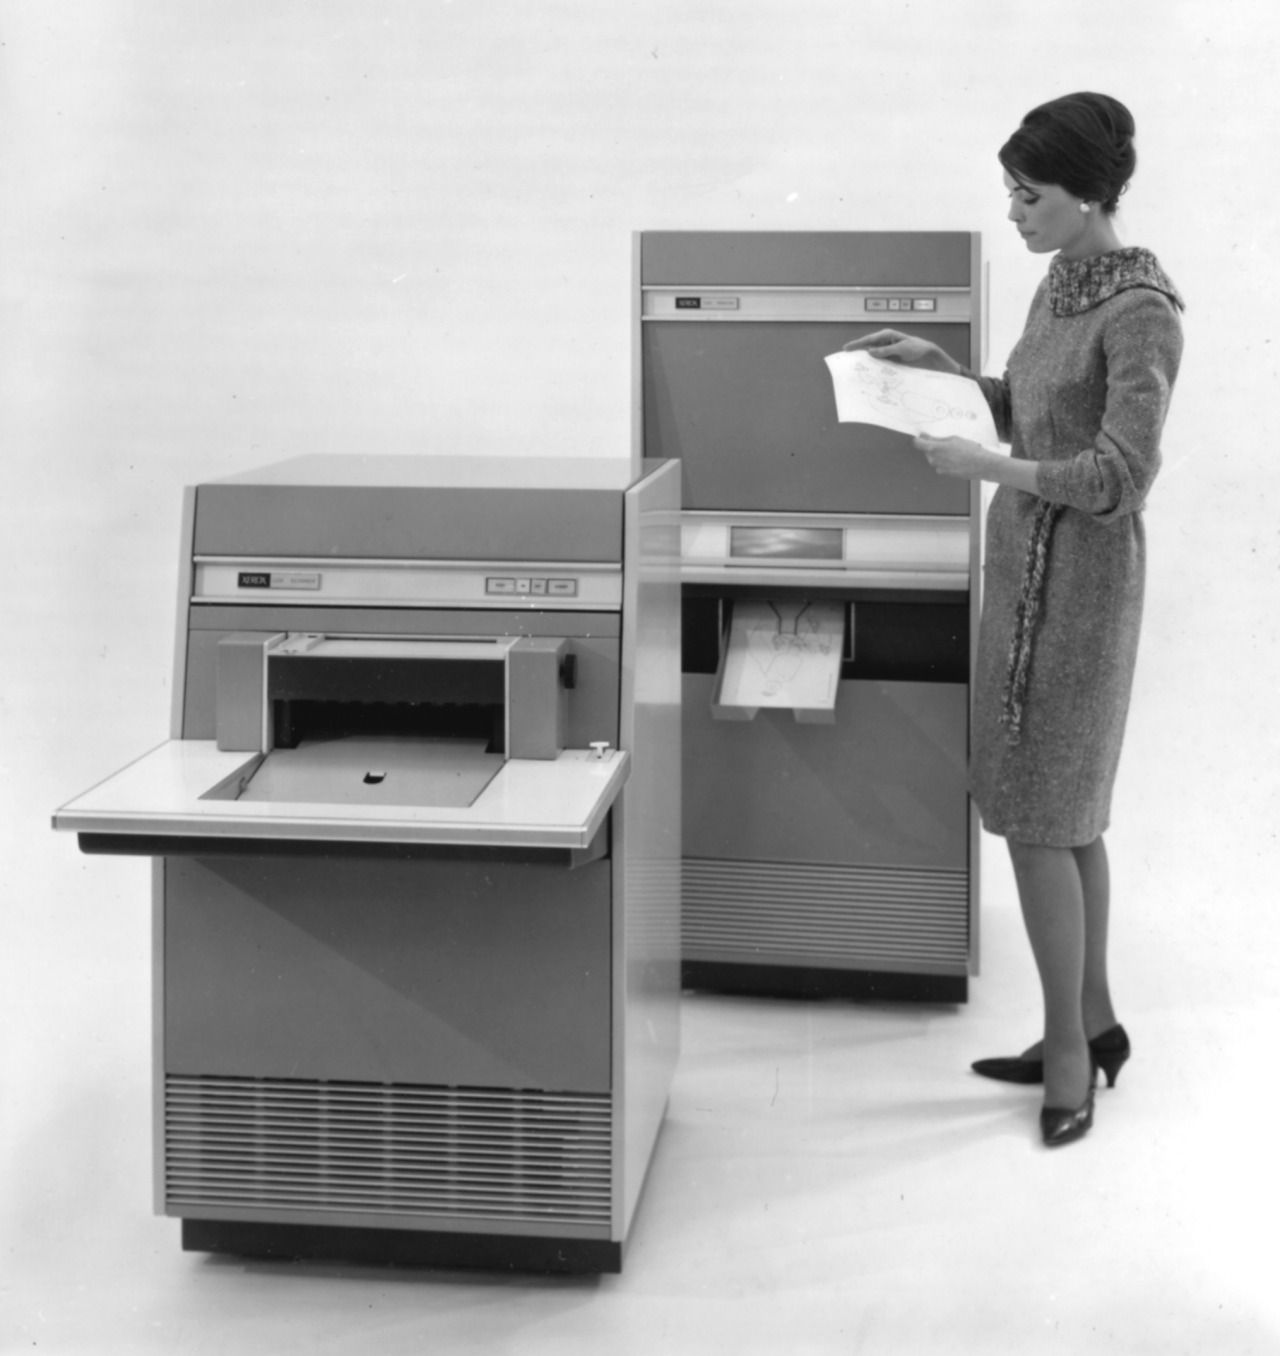 Xerox Expanded Into Facsimile With Its Ldx Long Distance